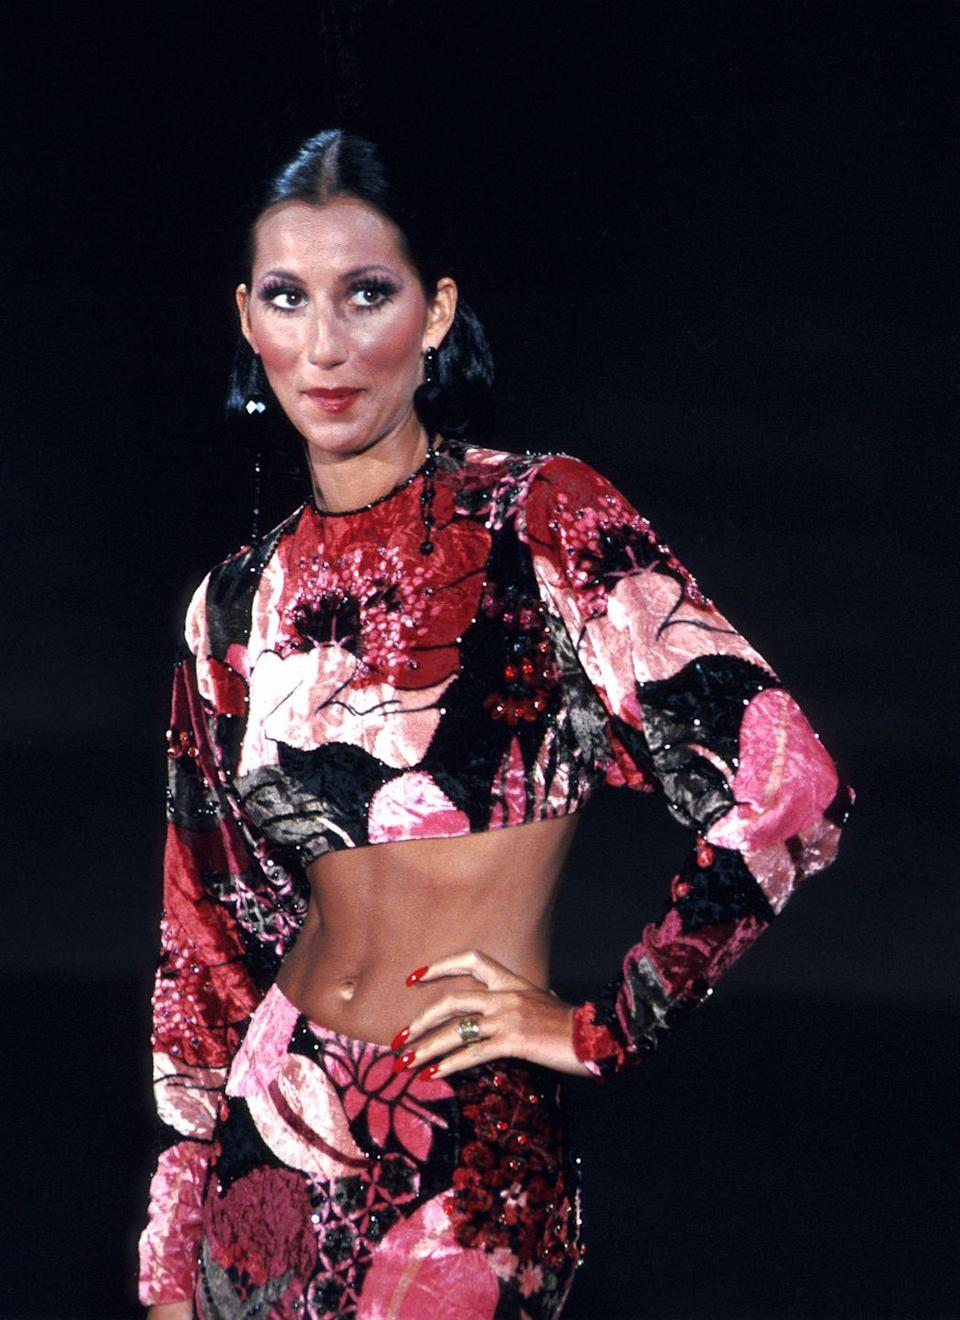 <p>Wearing a floral two-piece outfit and drop earrings while performing. </p>